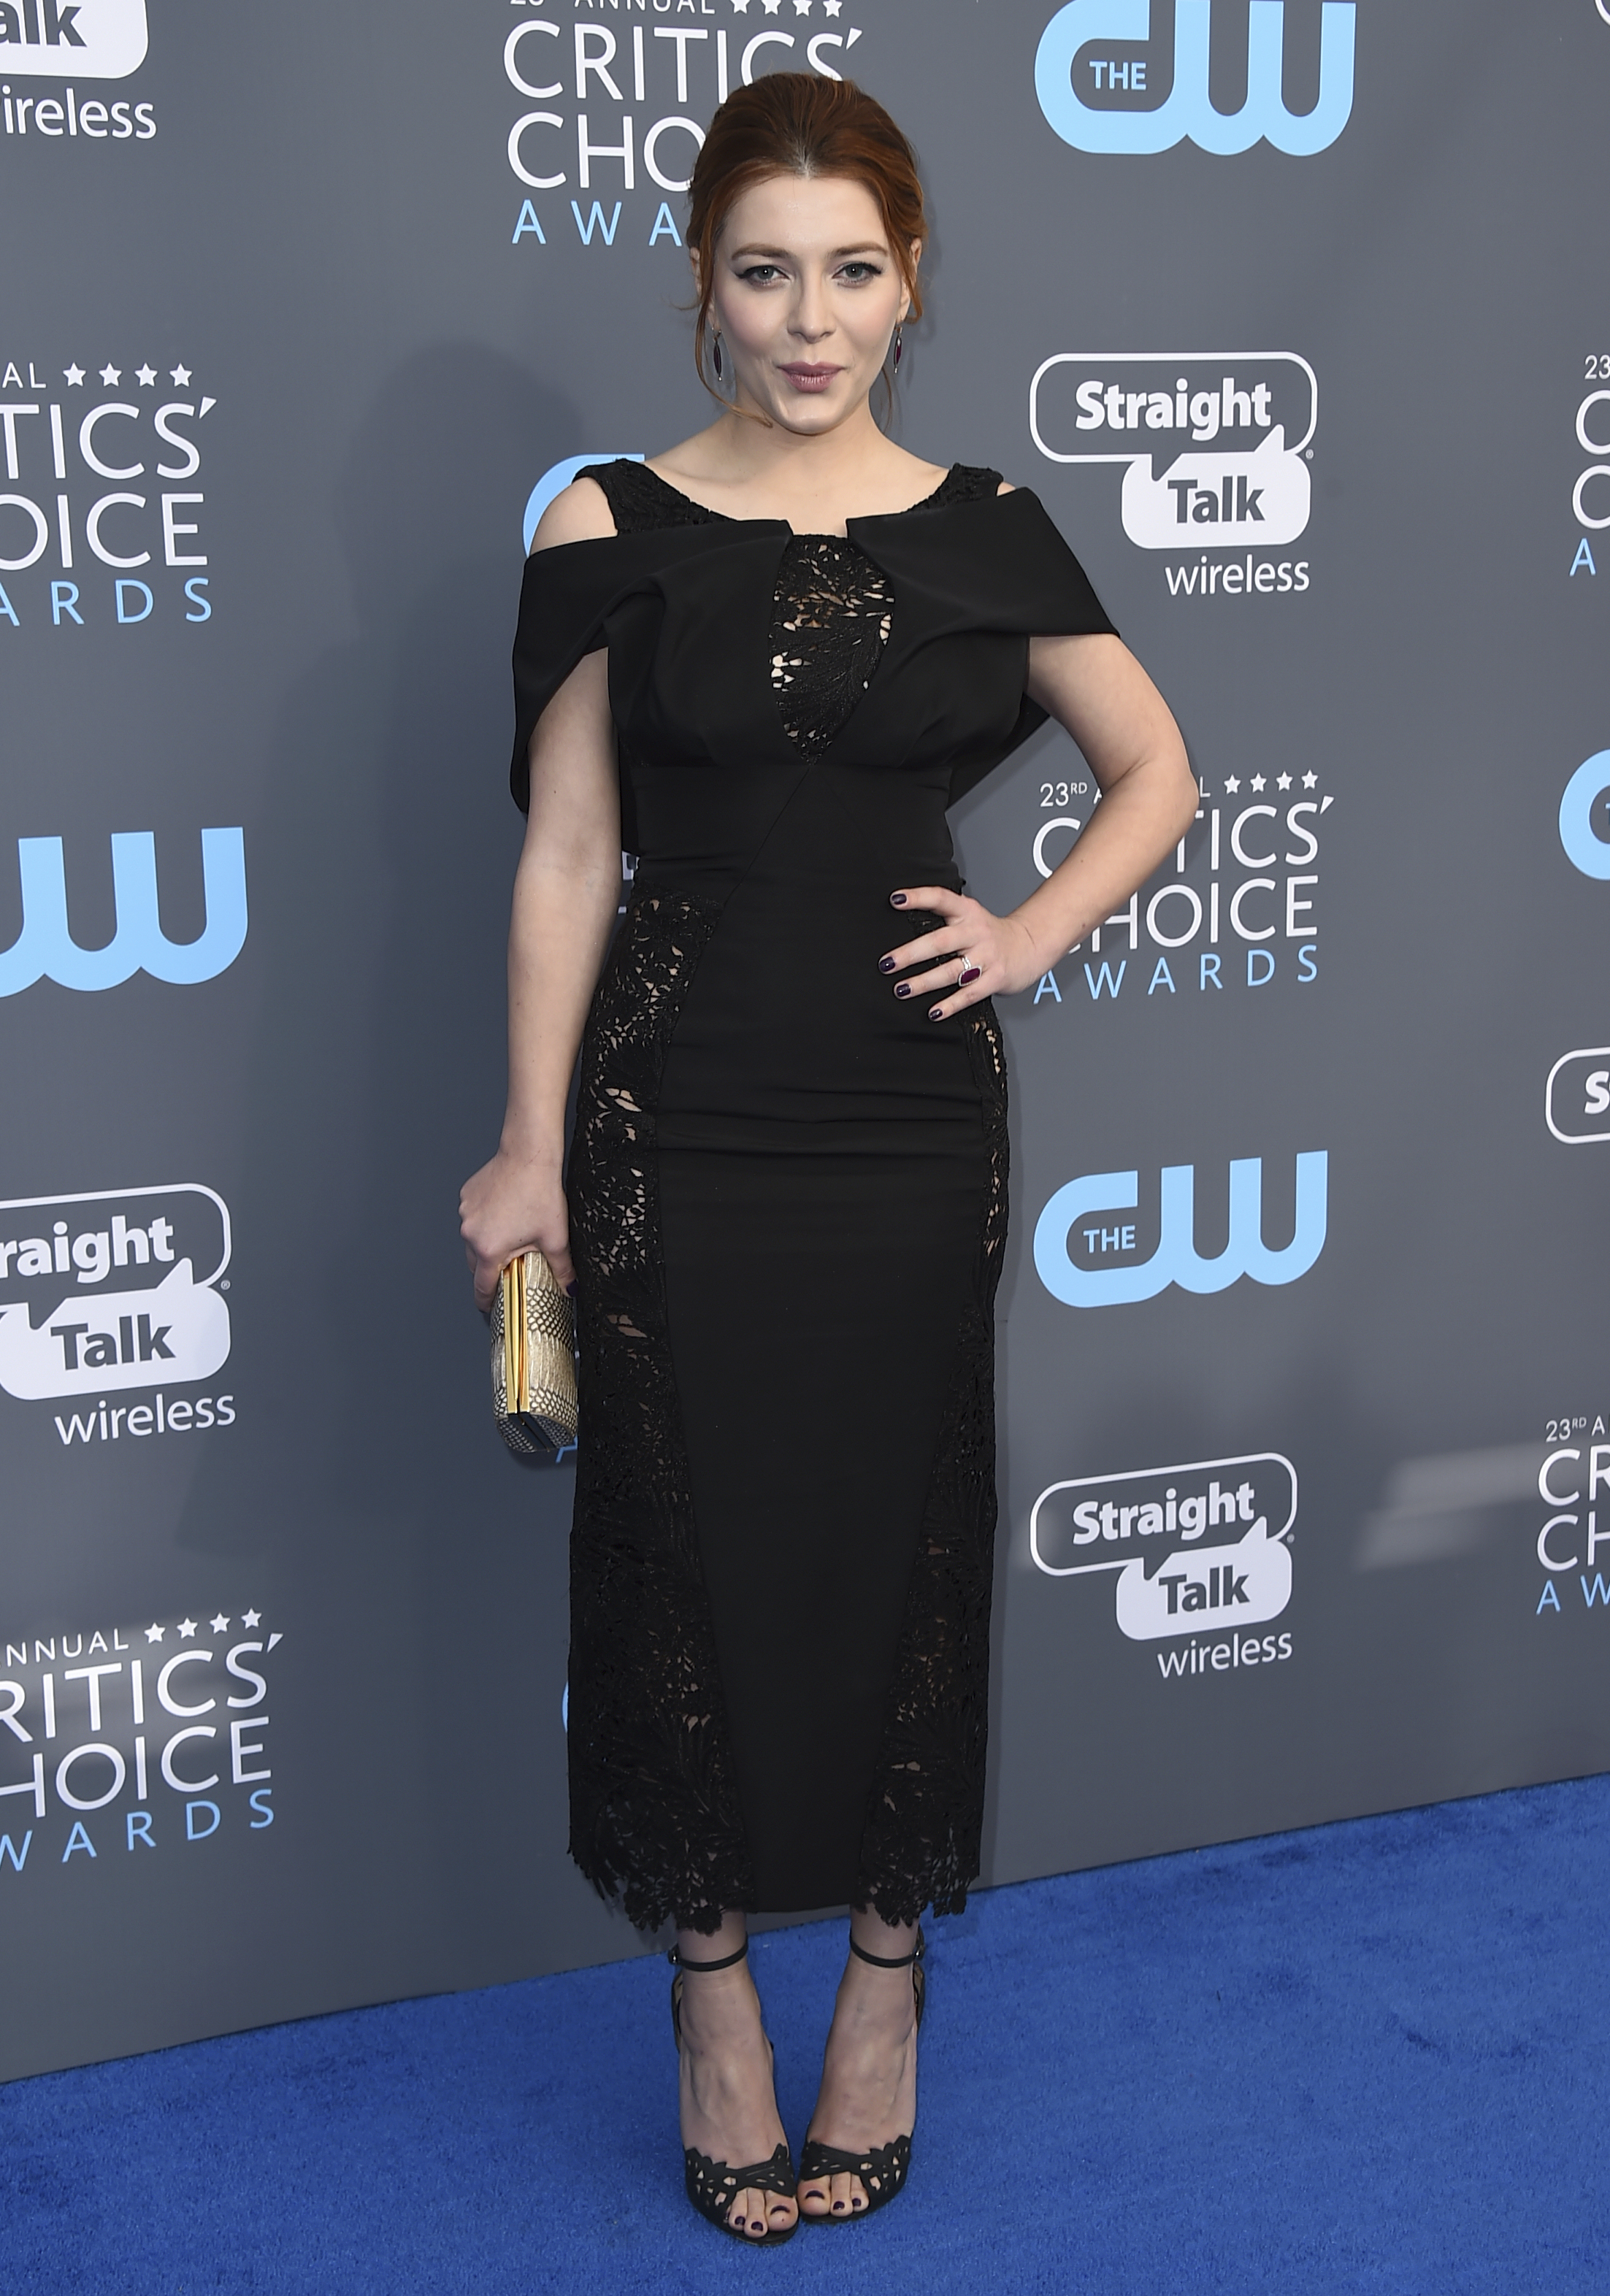 <div class='meta'><div class='origin-logo' data-origin='AP'></div><span class='caption-text' data-credit='Jordan Strauss/Invision/AP'>Elena Satine arrives at the 23rd annual Critics' Choice Awards at the Barker Hangar on Thursday, Jan. 11, 2018, in Santa Monica, Calif.</span></div>